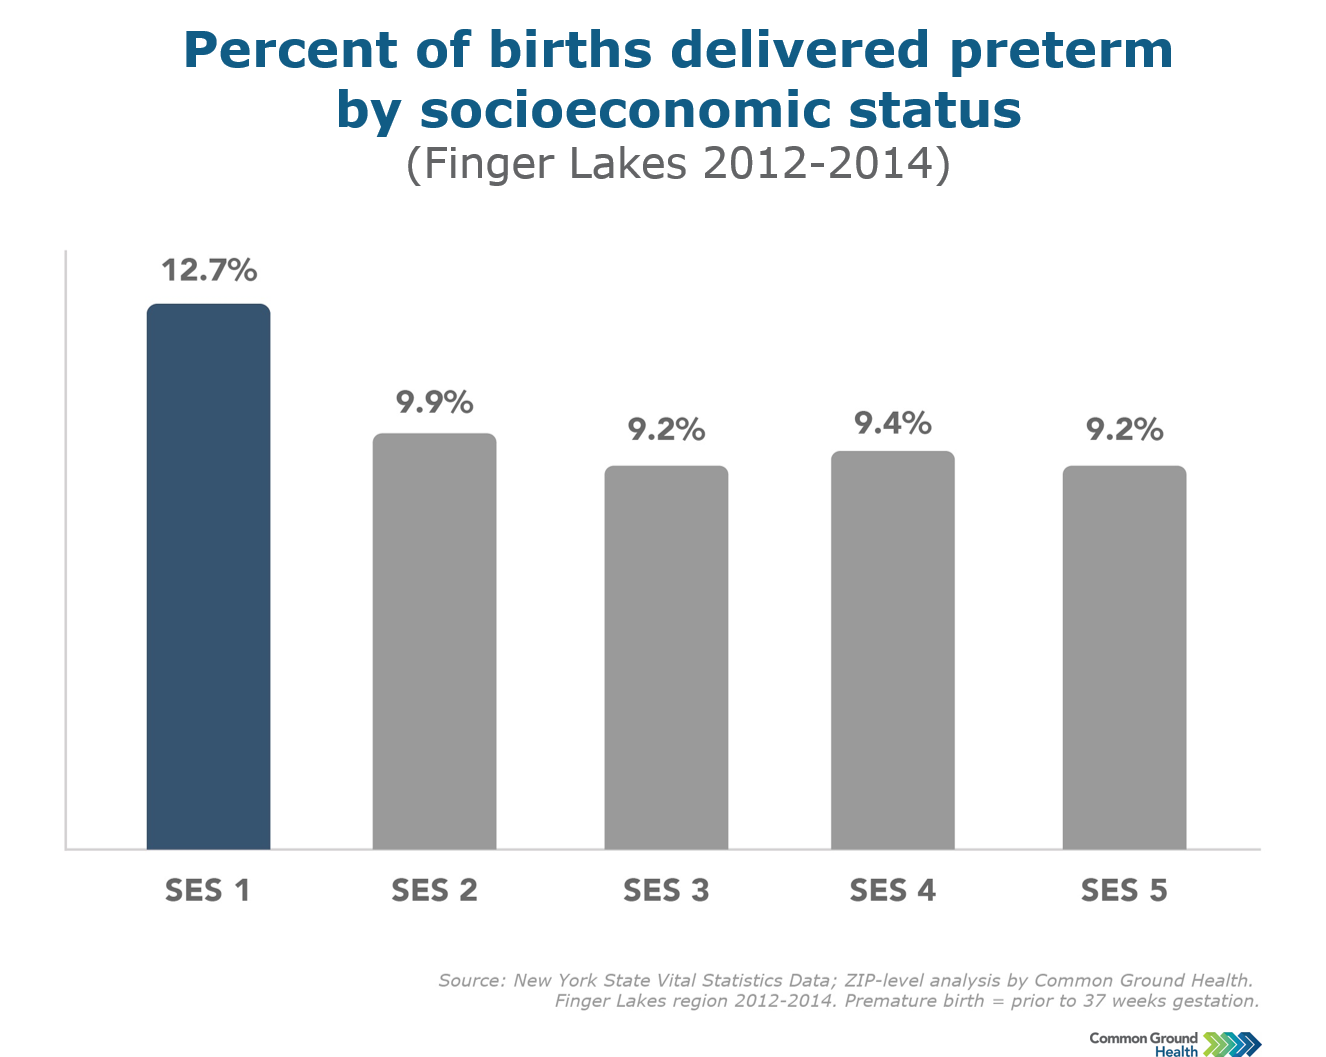 Preterm Birth Rates and Socioeconomic Status